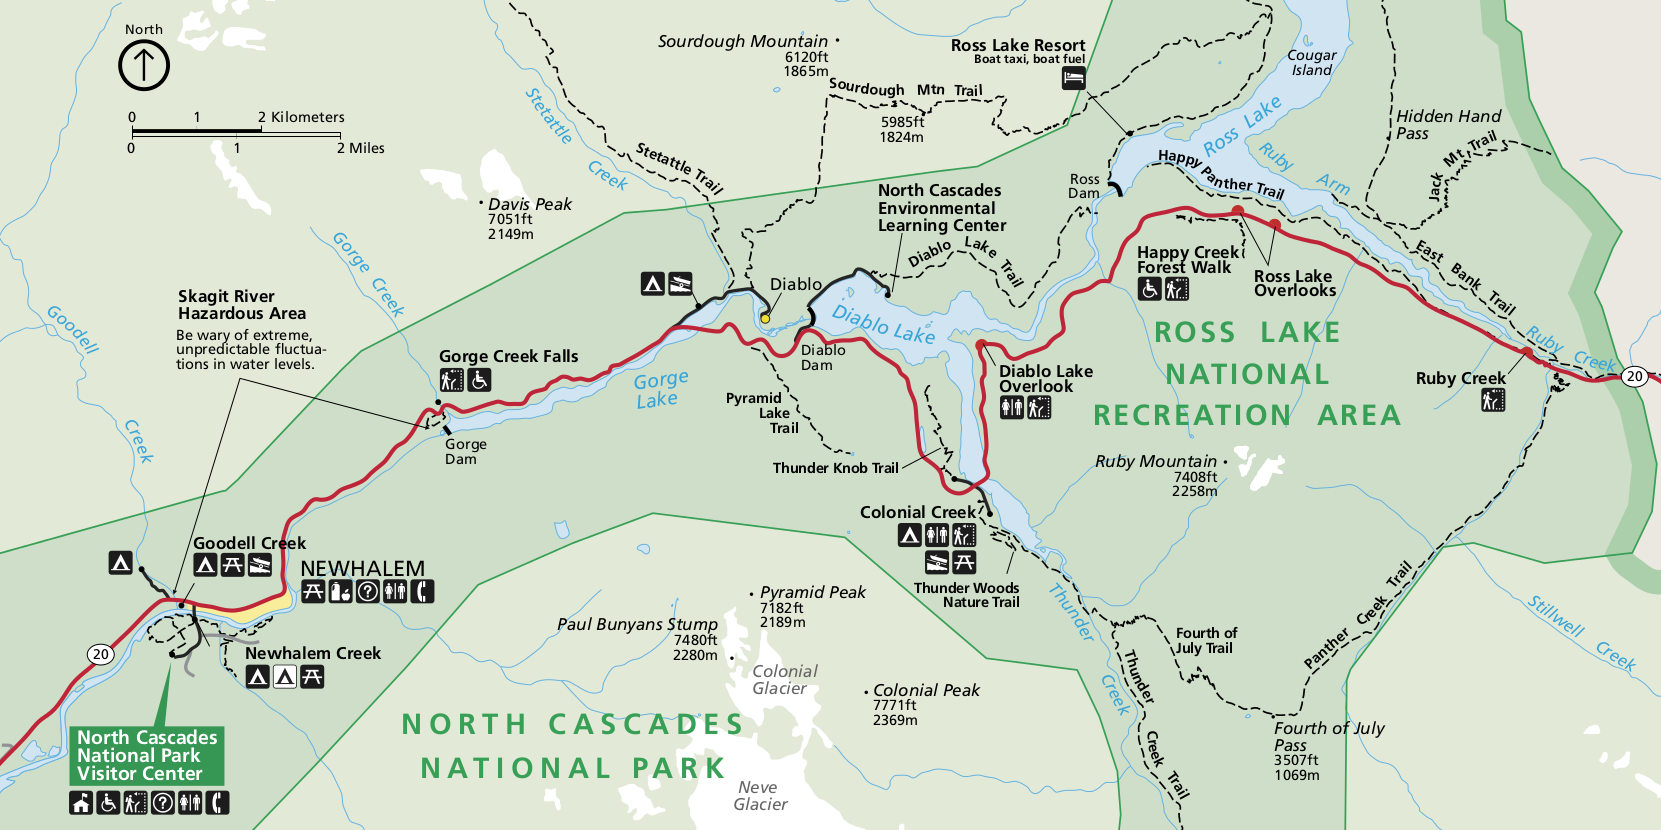 North Cascades Maps | NPMaps.com - just free maps, period.